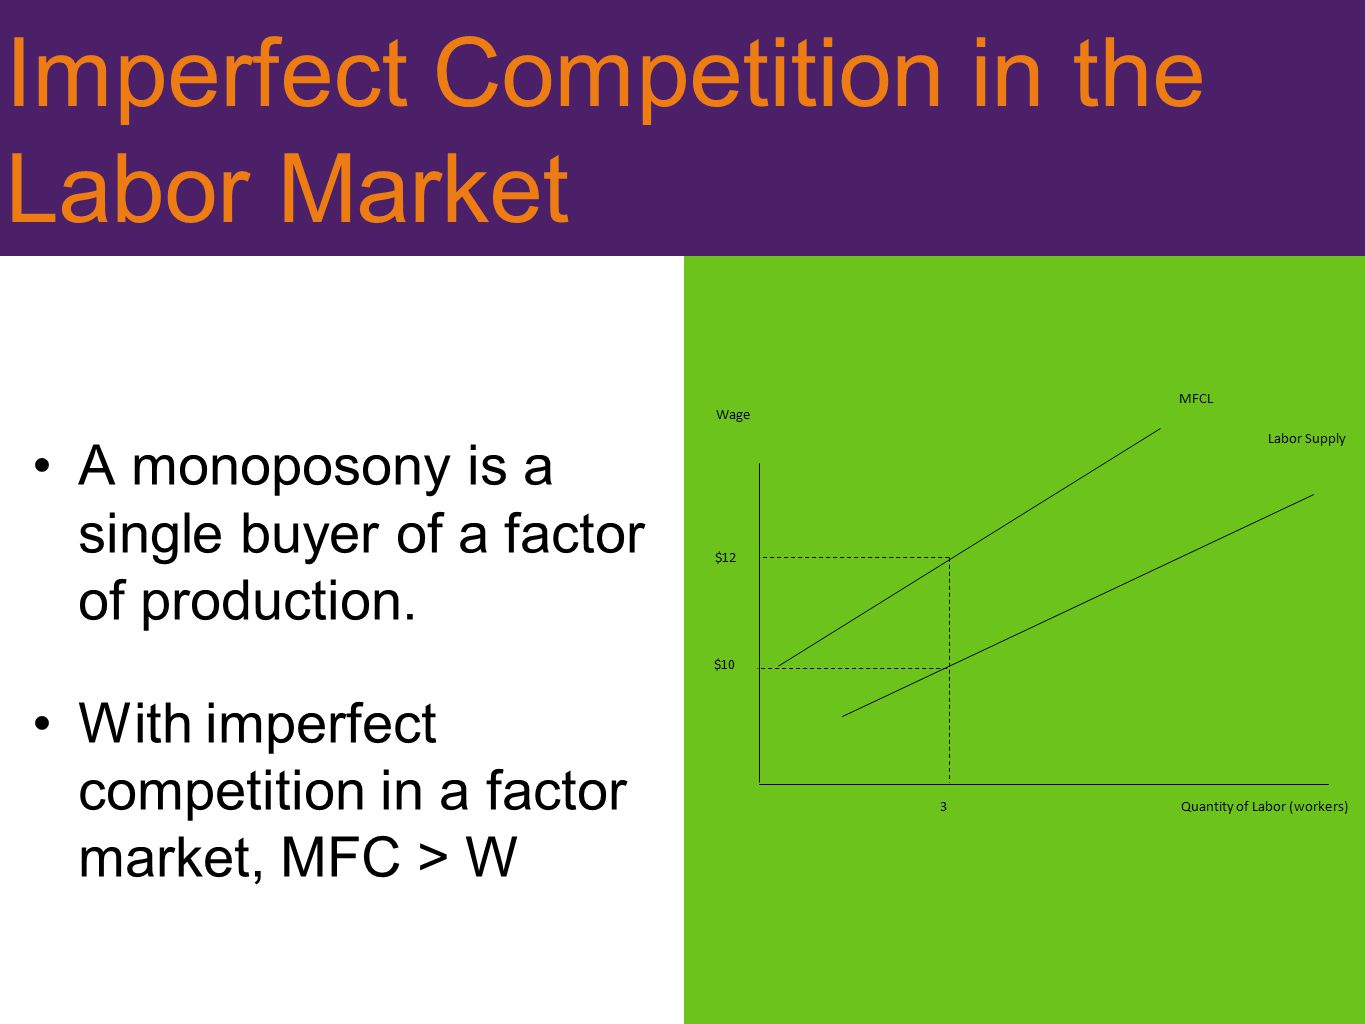 Imperfect Competition in the Labor Market